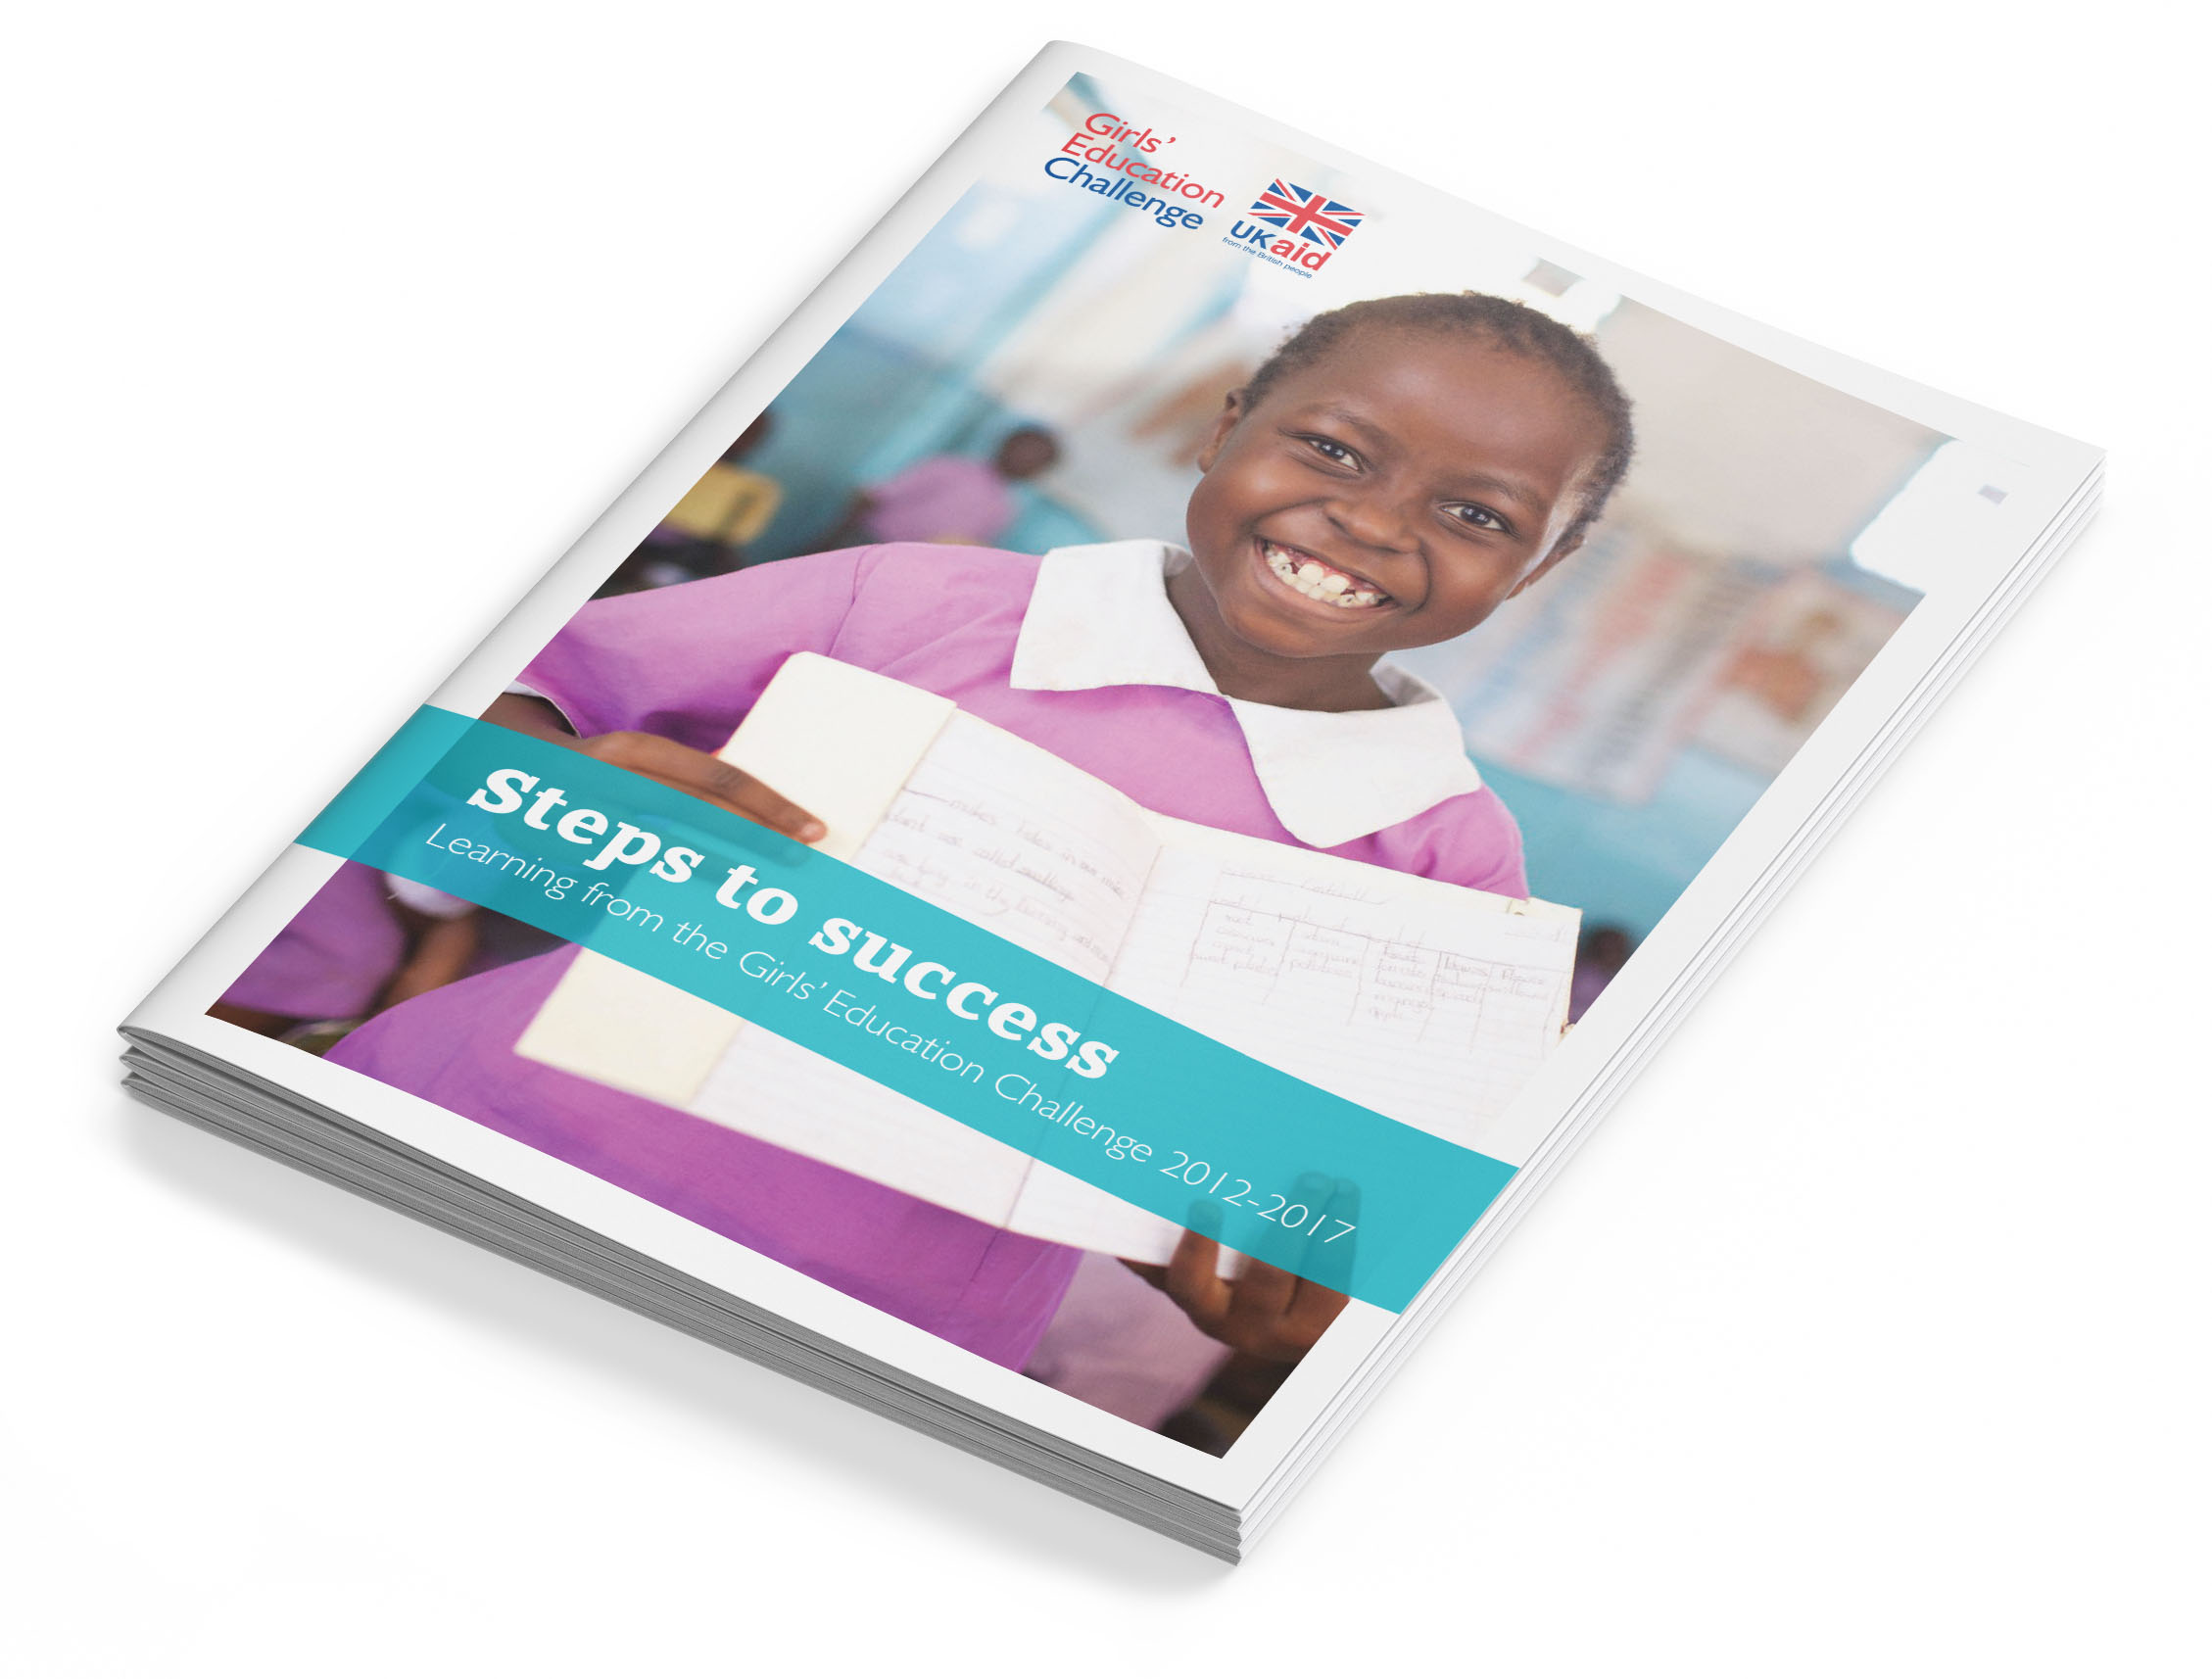 Girls' Education Challenge Steps to Success